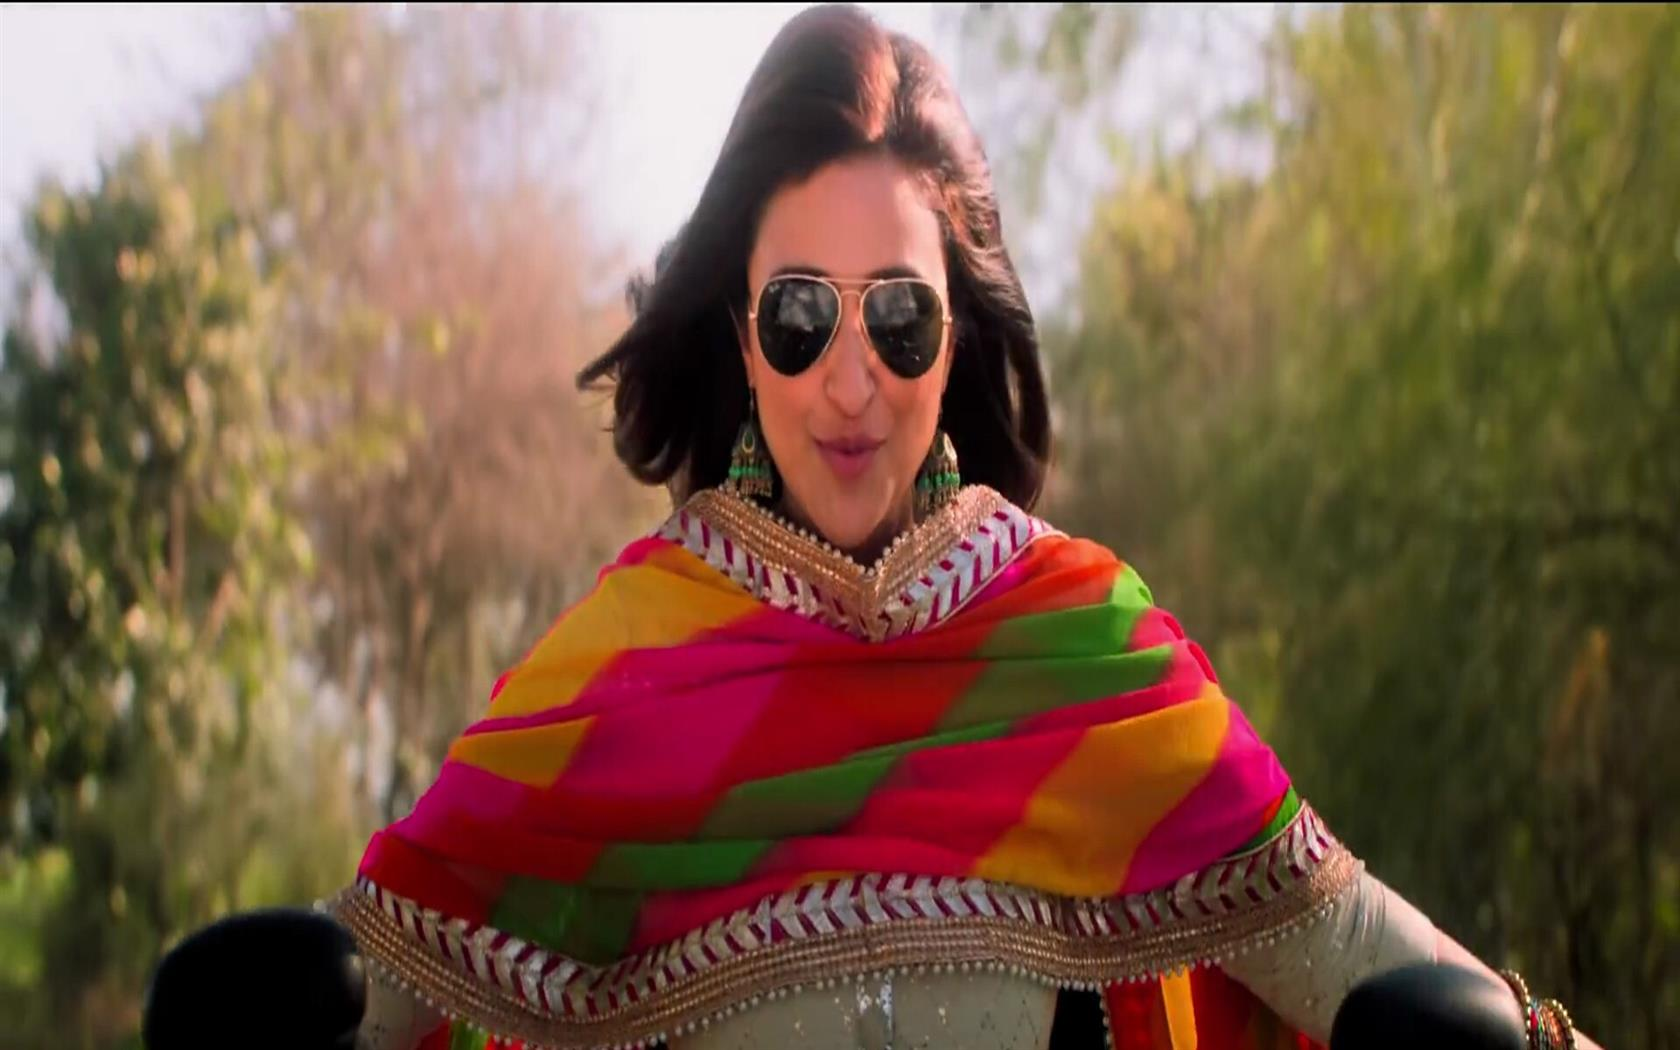 1680x1050 Parineeti Chopra wear Black Sunglass in Bollywood Movie Namaste England 2018